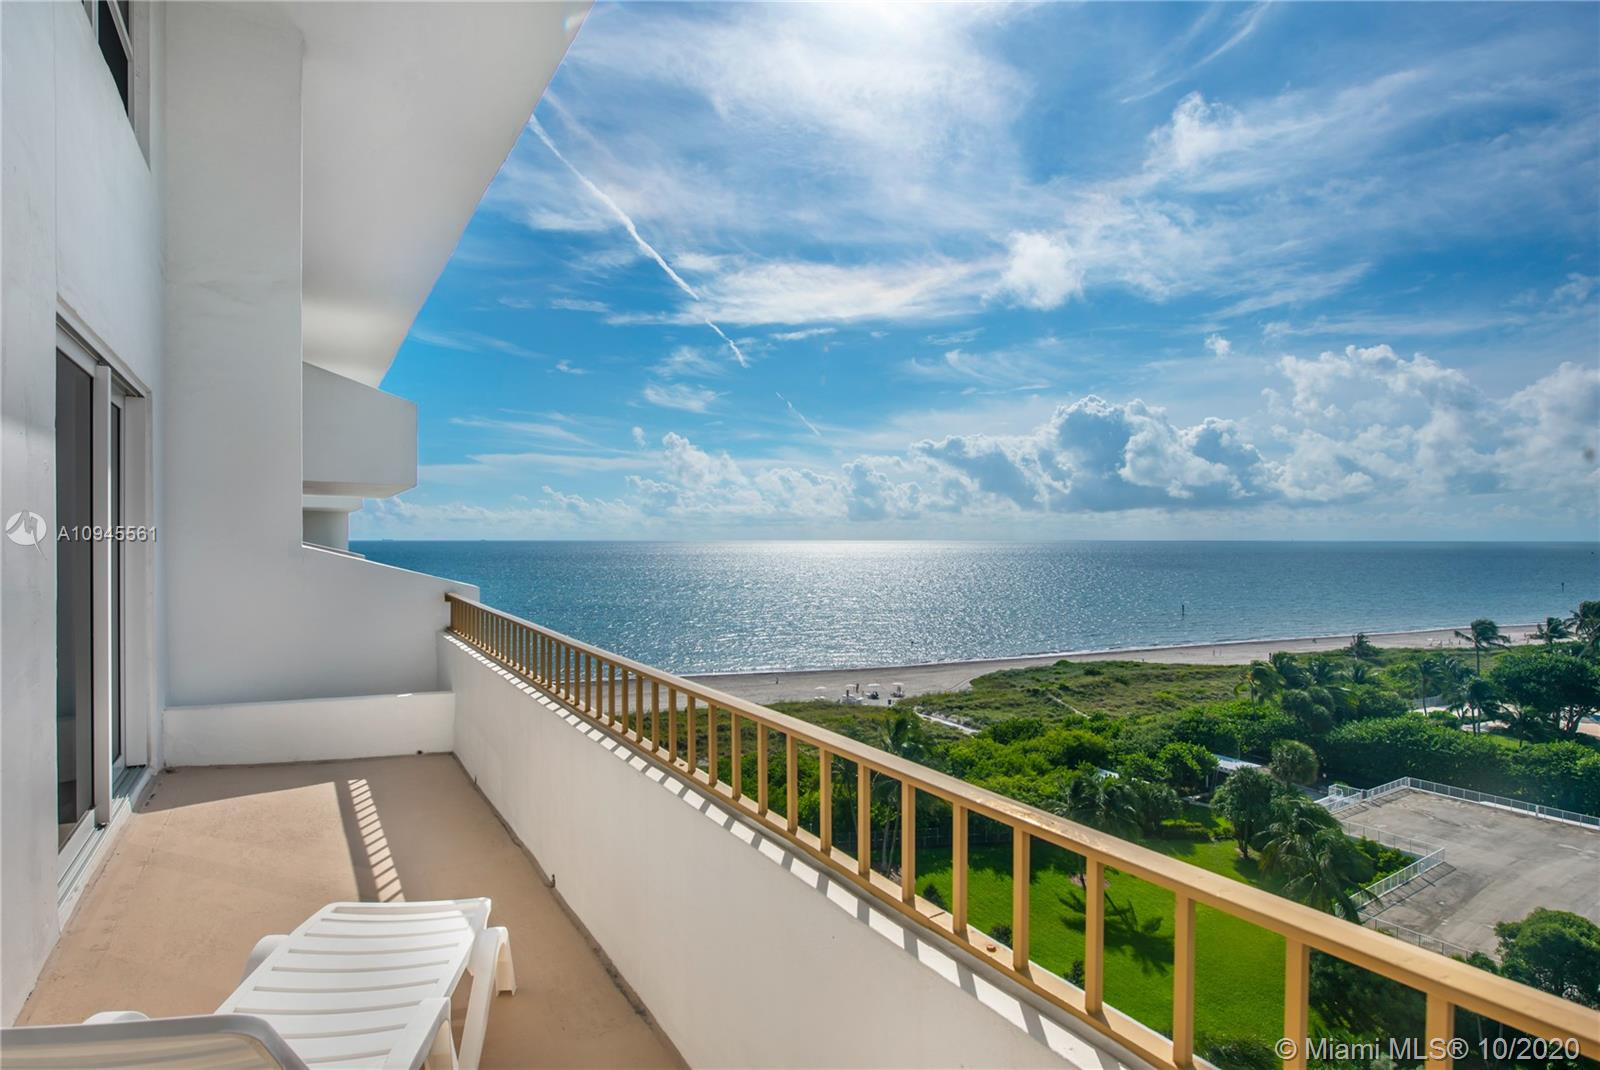 Commodore Club East #1109 - 177 Ocean Lane Drive #1109, Key Biscayne, FL 33149